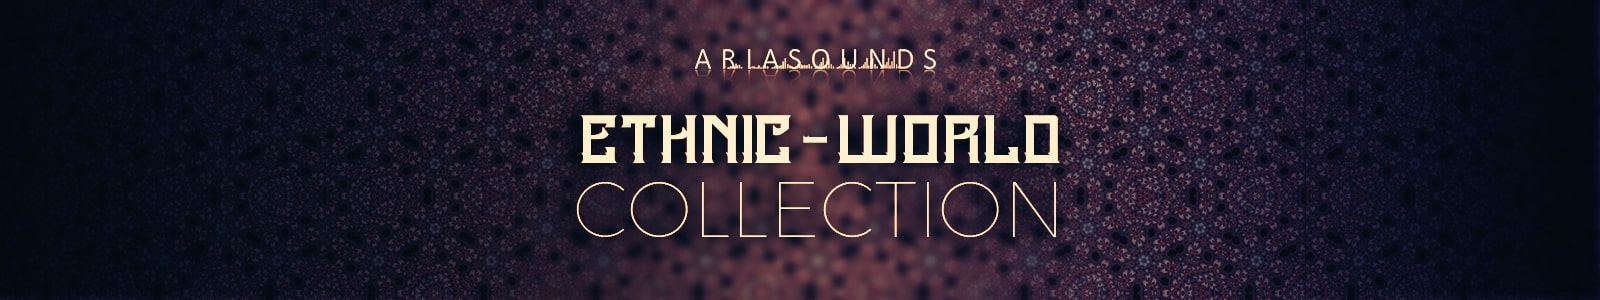 ethnic-world collection